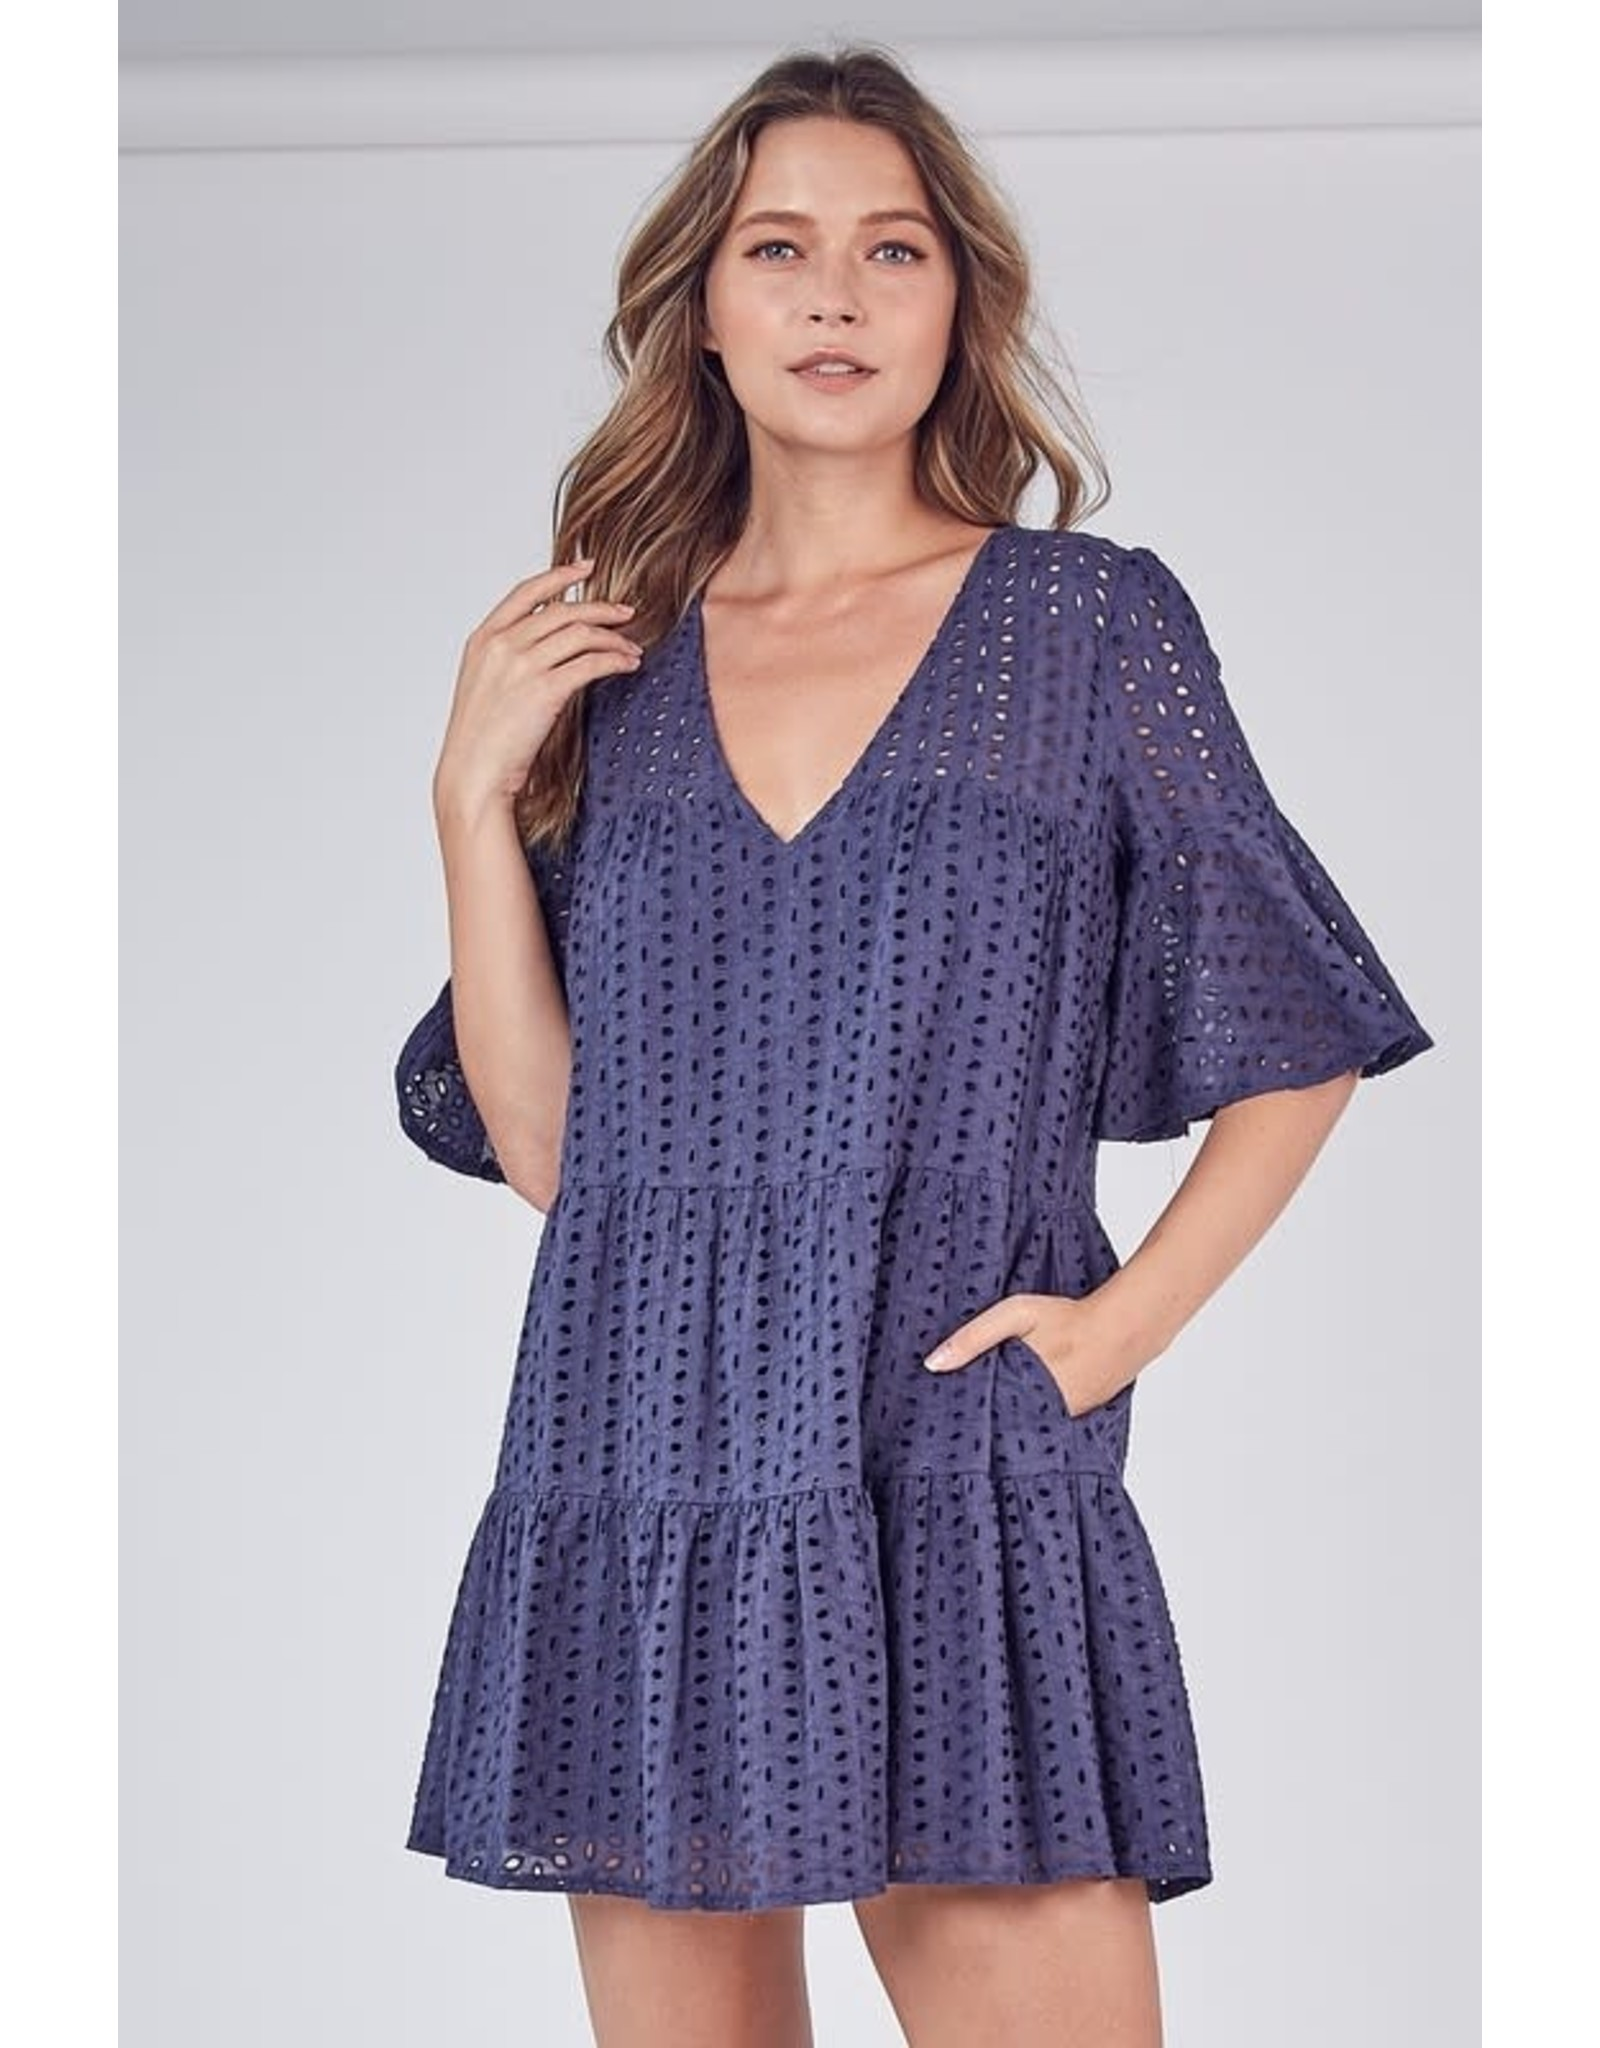 Mustard Seed Navy Madeline Dress